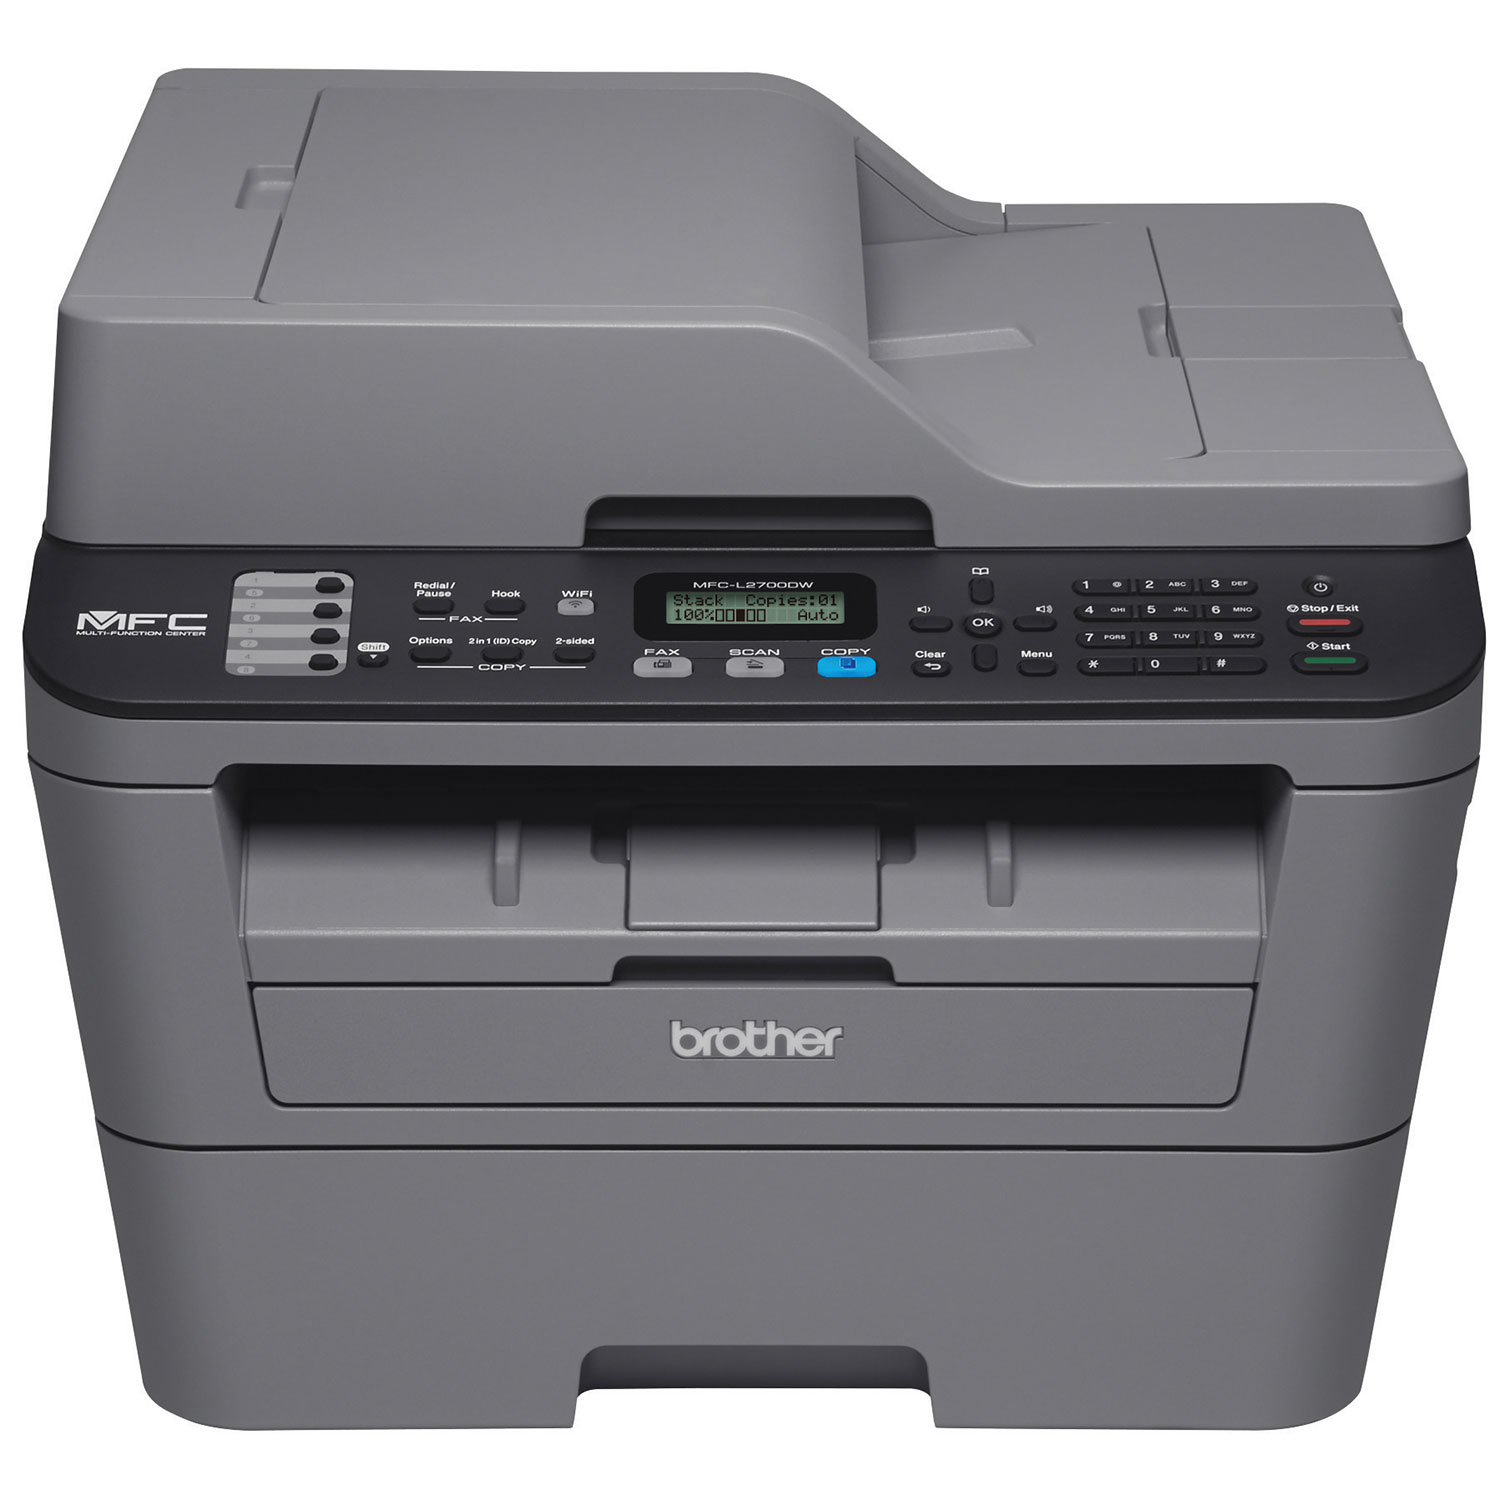 brother-dcp-9050cdn-toner.jpg